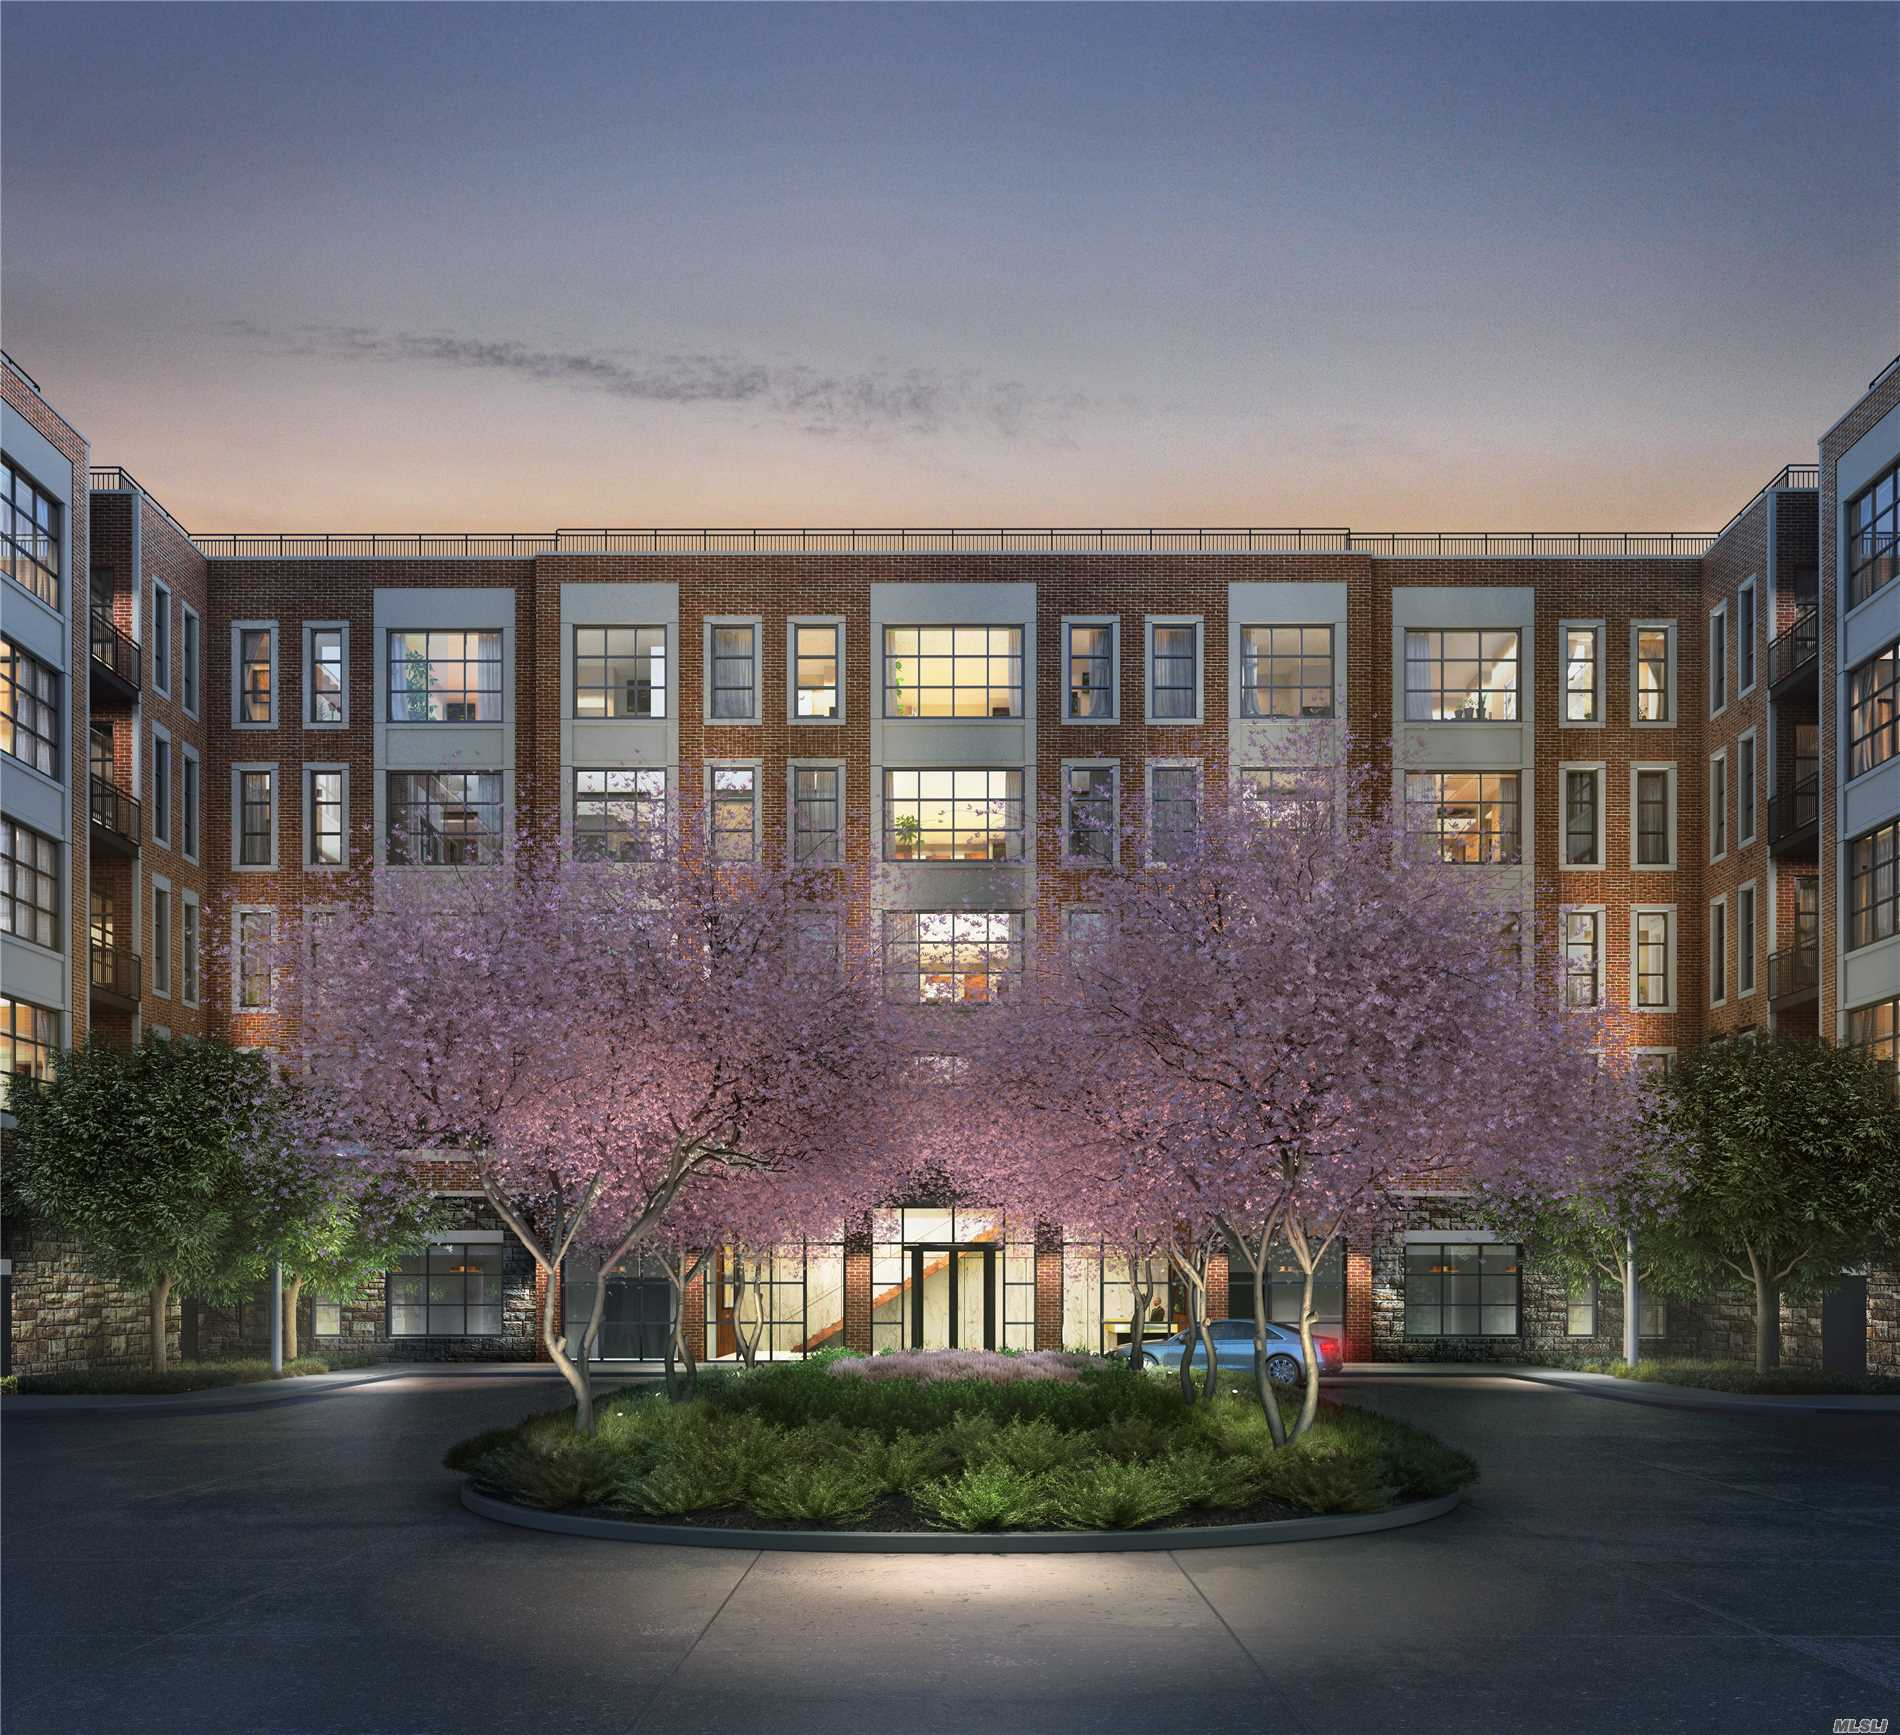 Property for sale at 100 Garvies Point Road # 1239, Glen Cove NY 11542, Glen Cove,  New York 11542